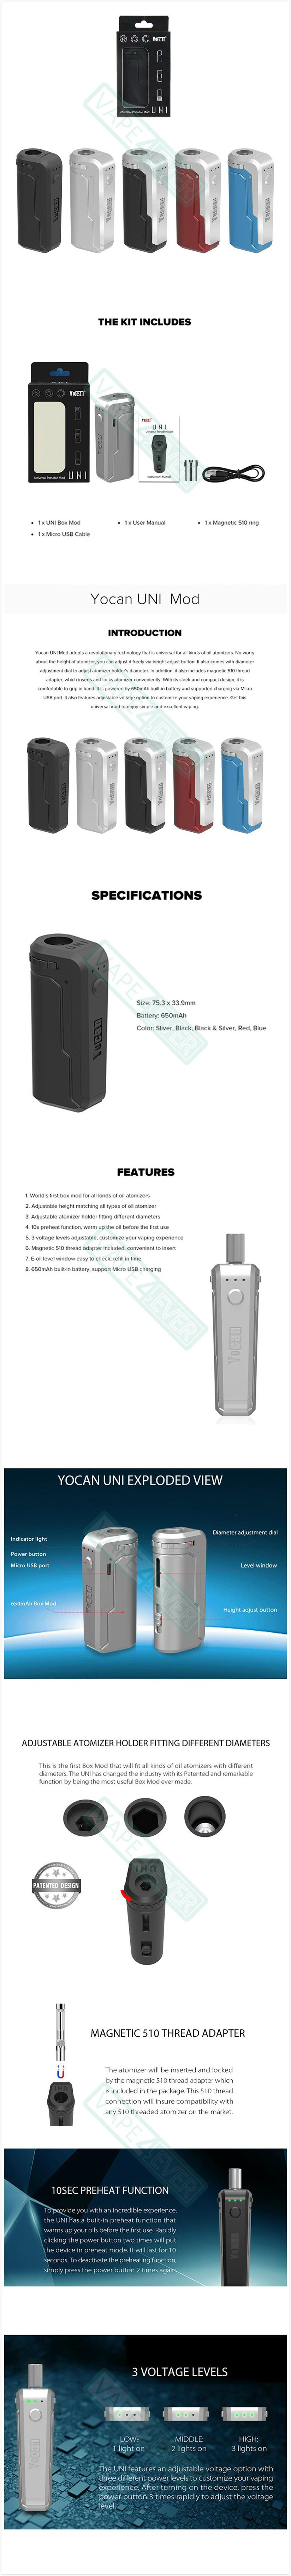 Yocan UNI Vaporizer Box Mod 650mAh For 510 Thread CBD Oil Cartridge/Atomizer Instruction